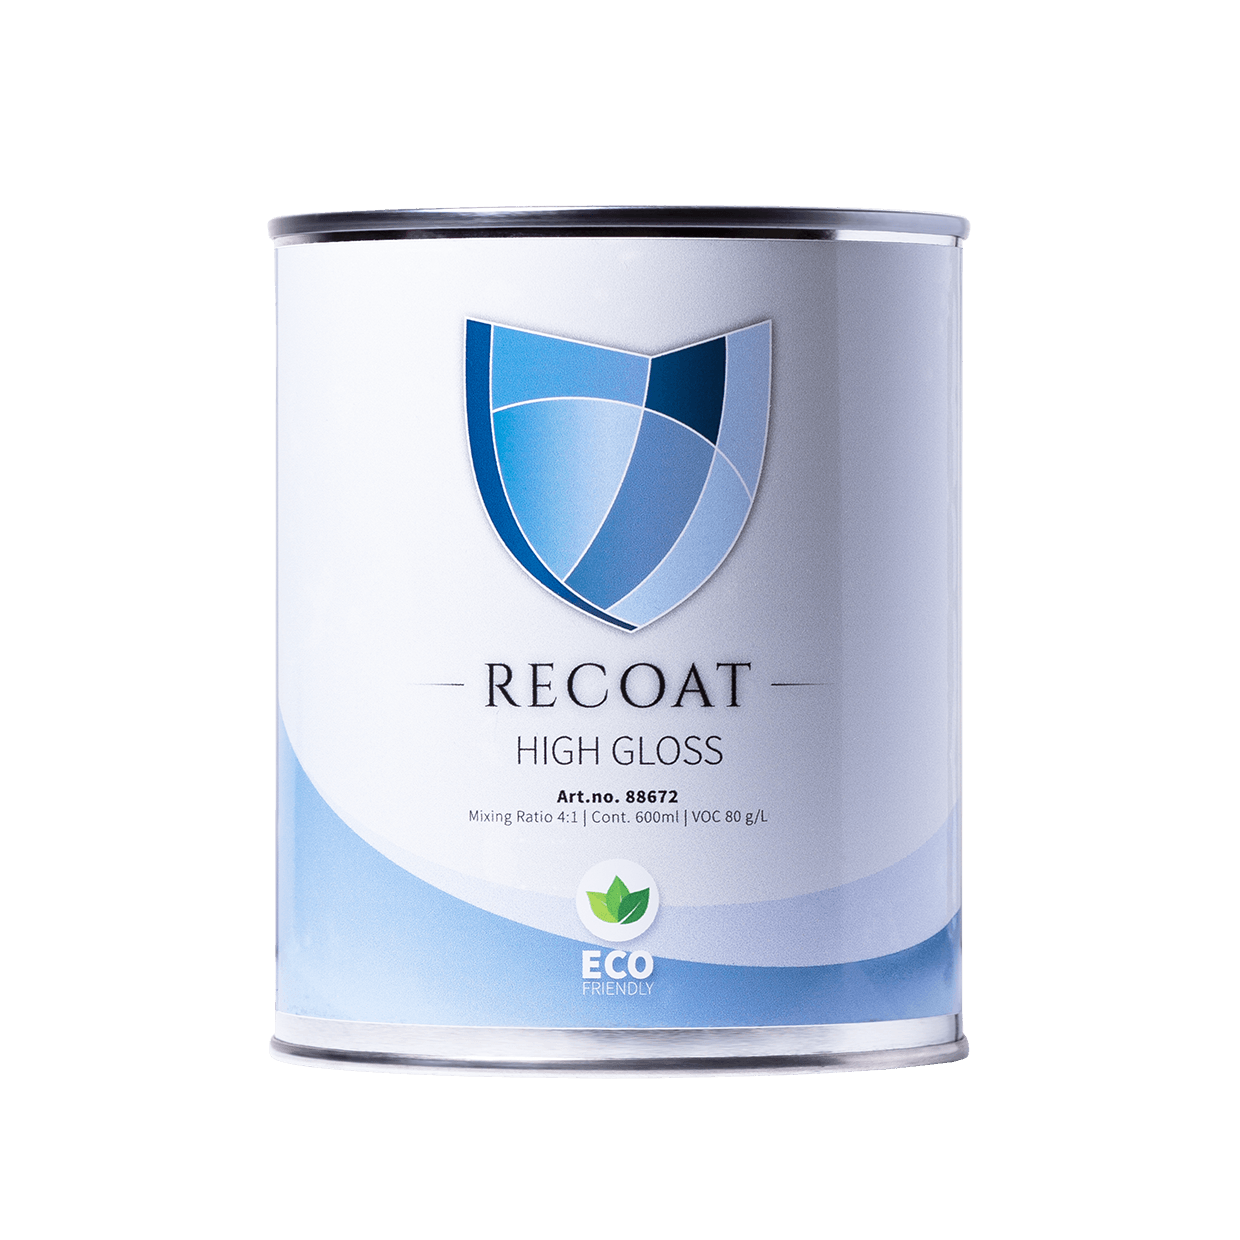 Recoat High Gloss